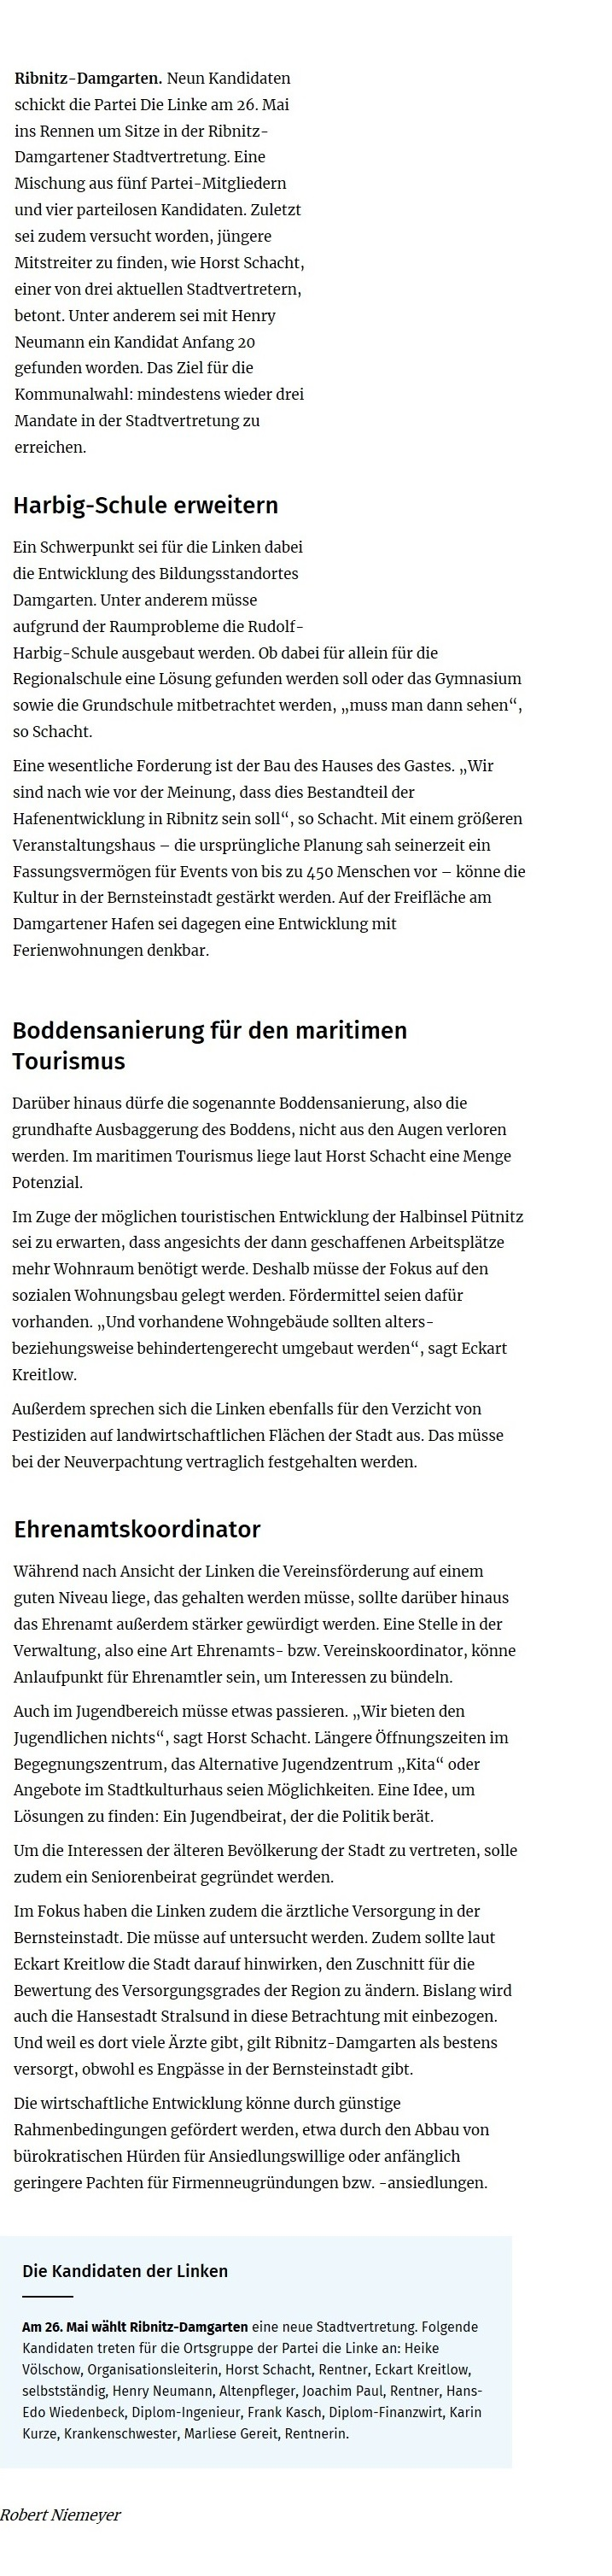 Ostsee-Zeitung-Beitrag vom 13. Mai 2019 / Kommunalwahl 2019 in  Ribnitz-Damgarten, Landkreis Vorpommern-Rügen  /  Kommunalwahl 2019 - 16:12 Uhr  /  13.05.2019 / Die Linke hält an Haus des Gastes fest